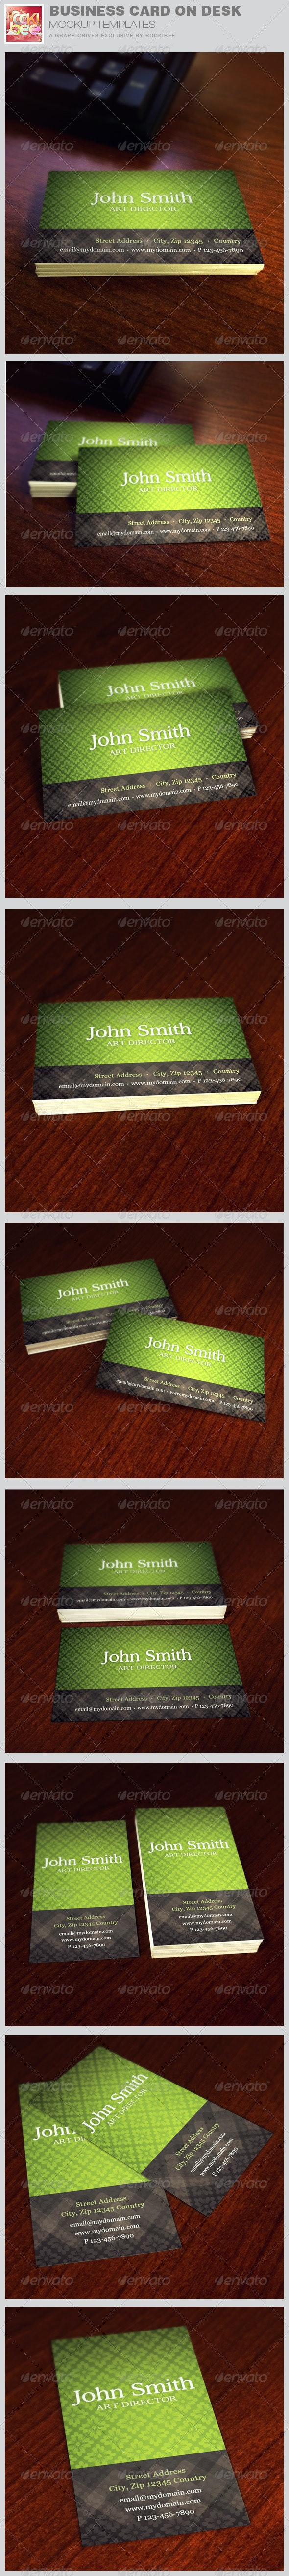 Business Card on Desk Mockup Templates - Business Cards Print